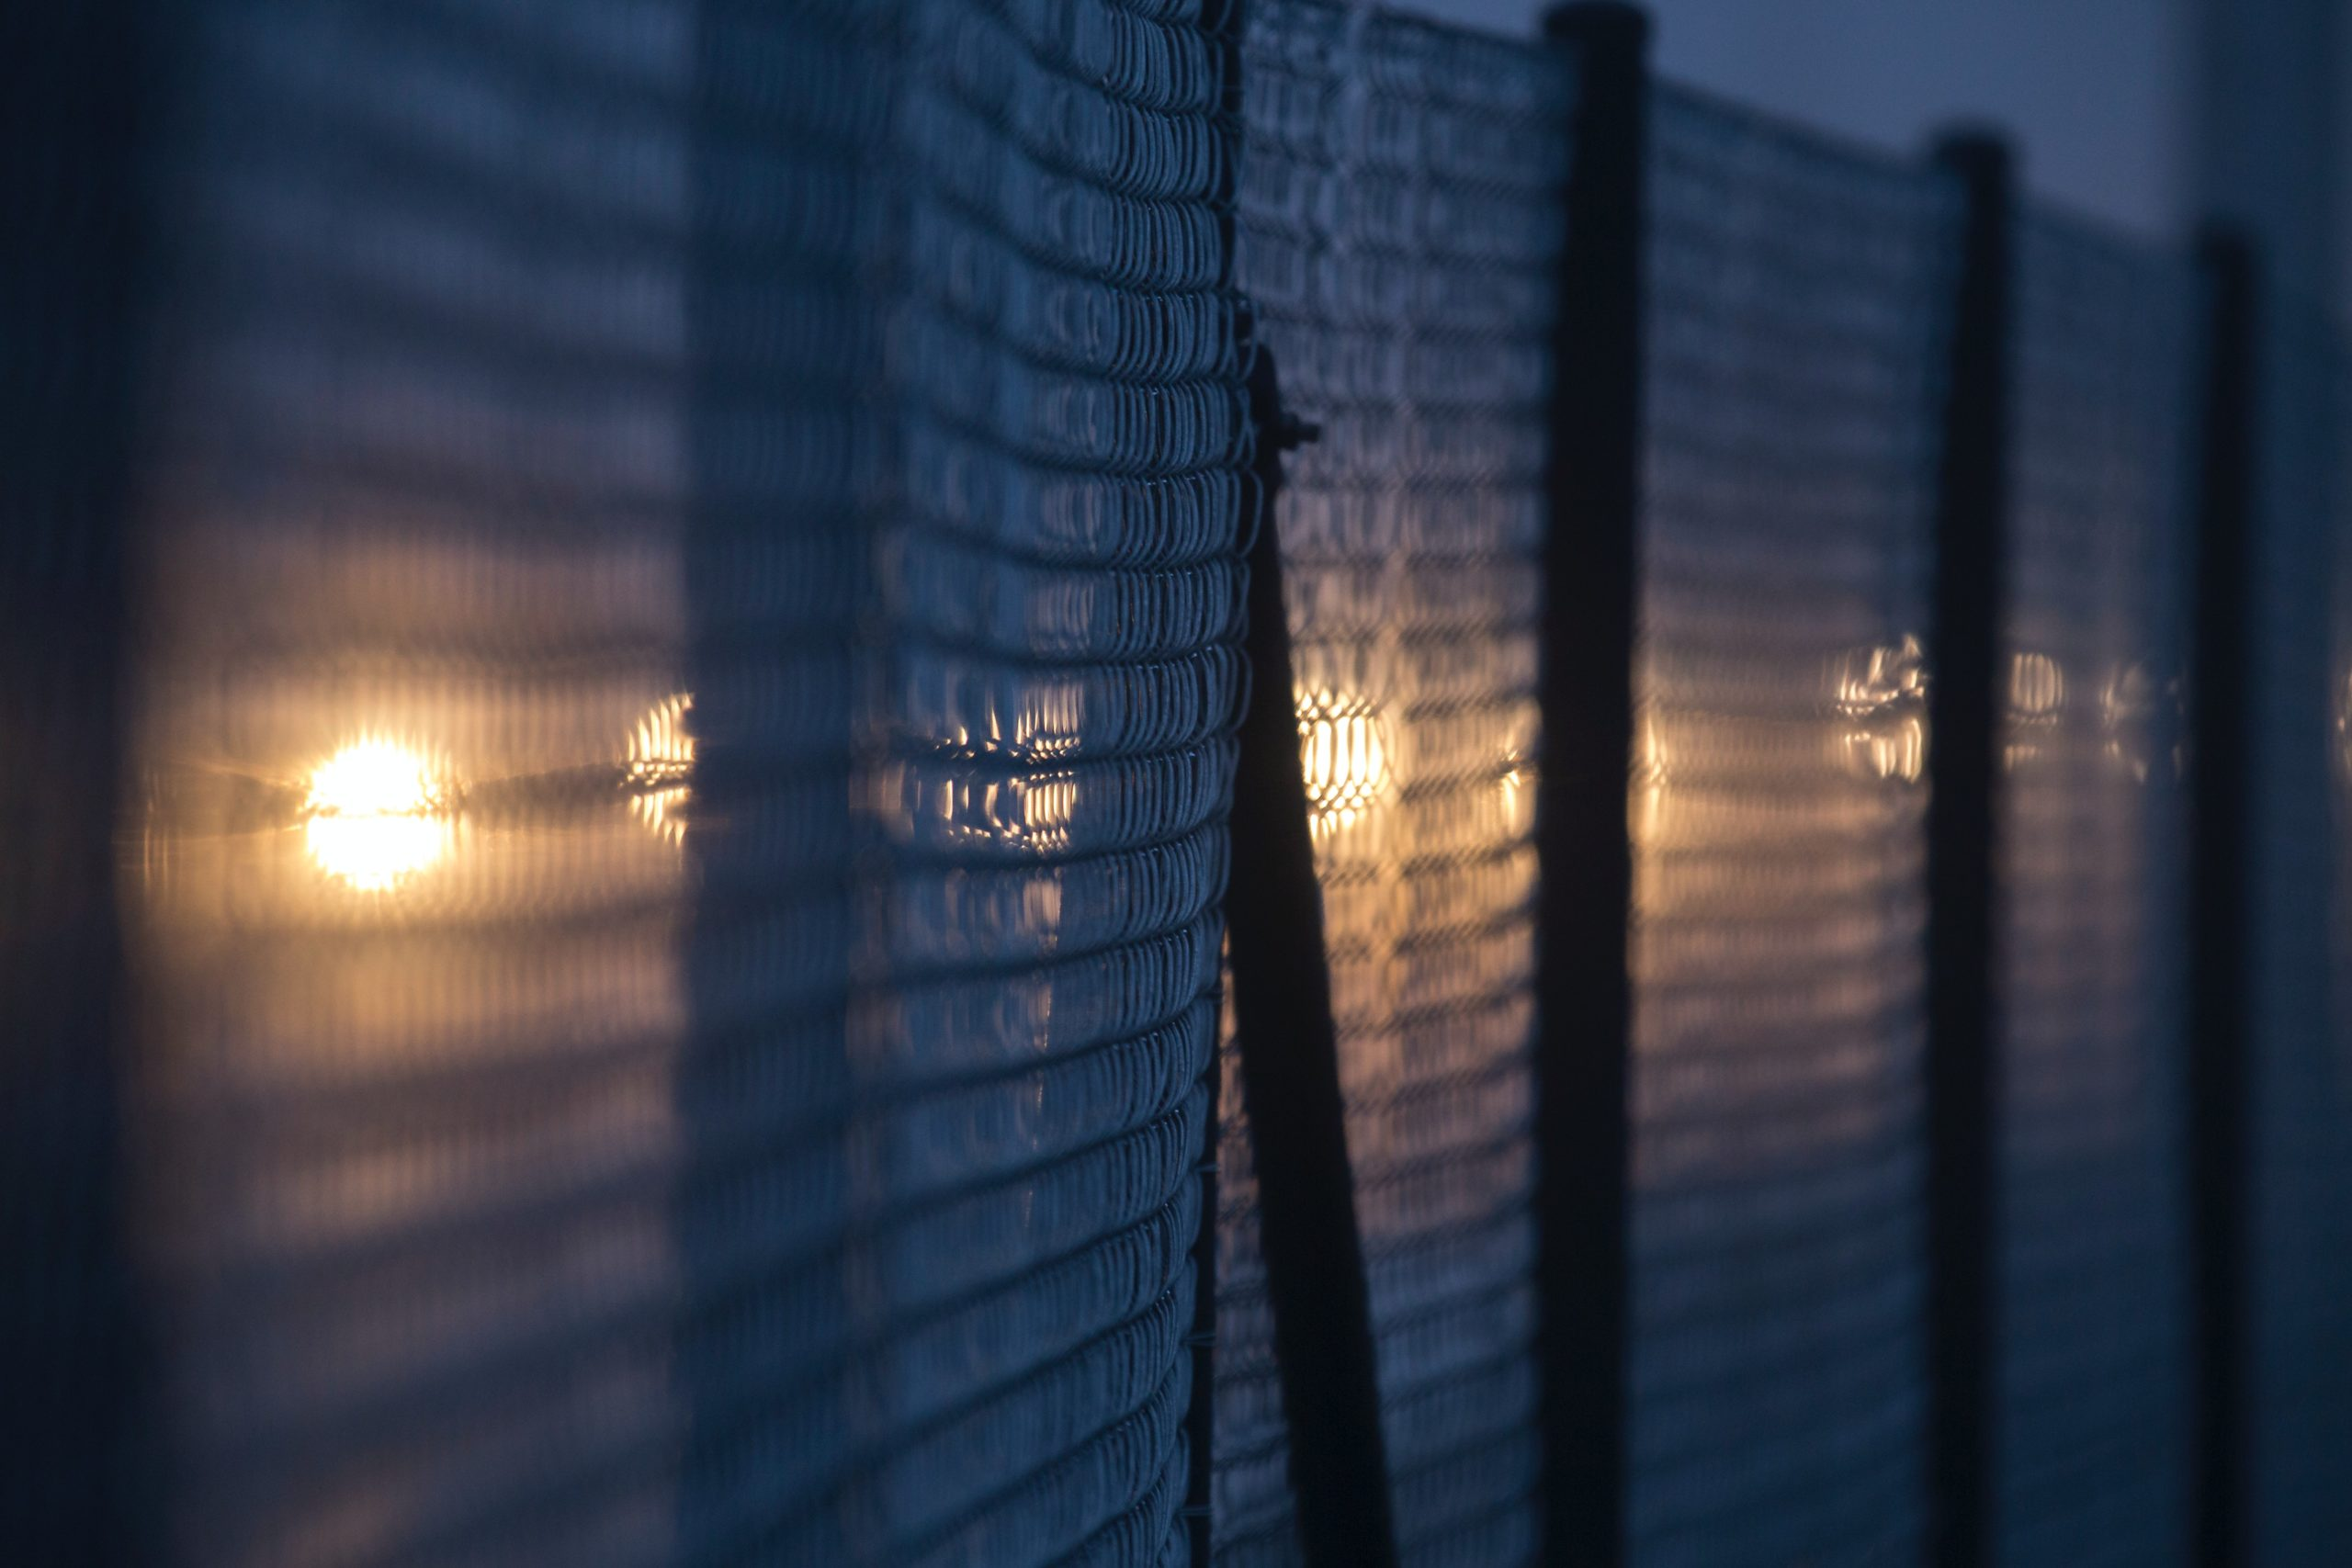 Wire fences at night with lights peaking through. Photo by Phil Botha on Unsplash